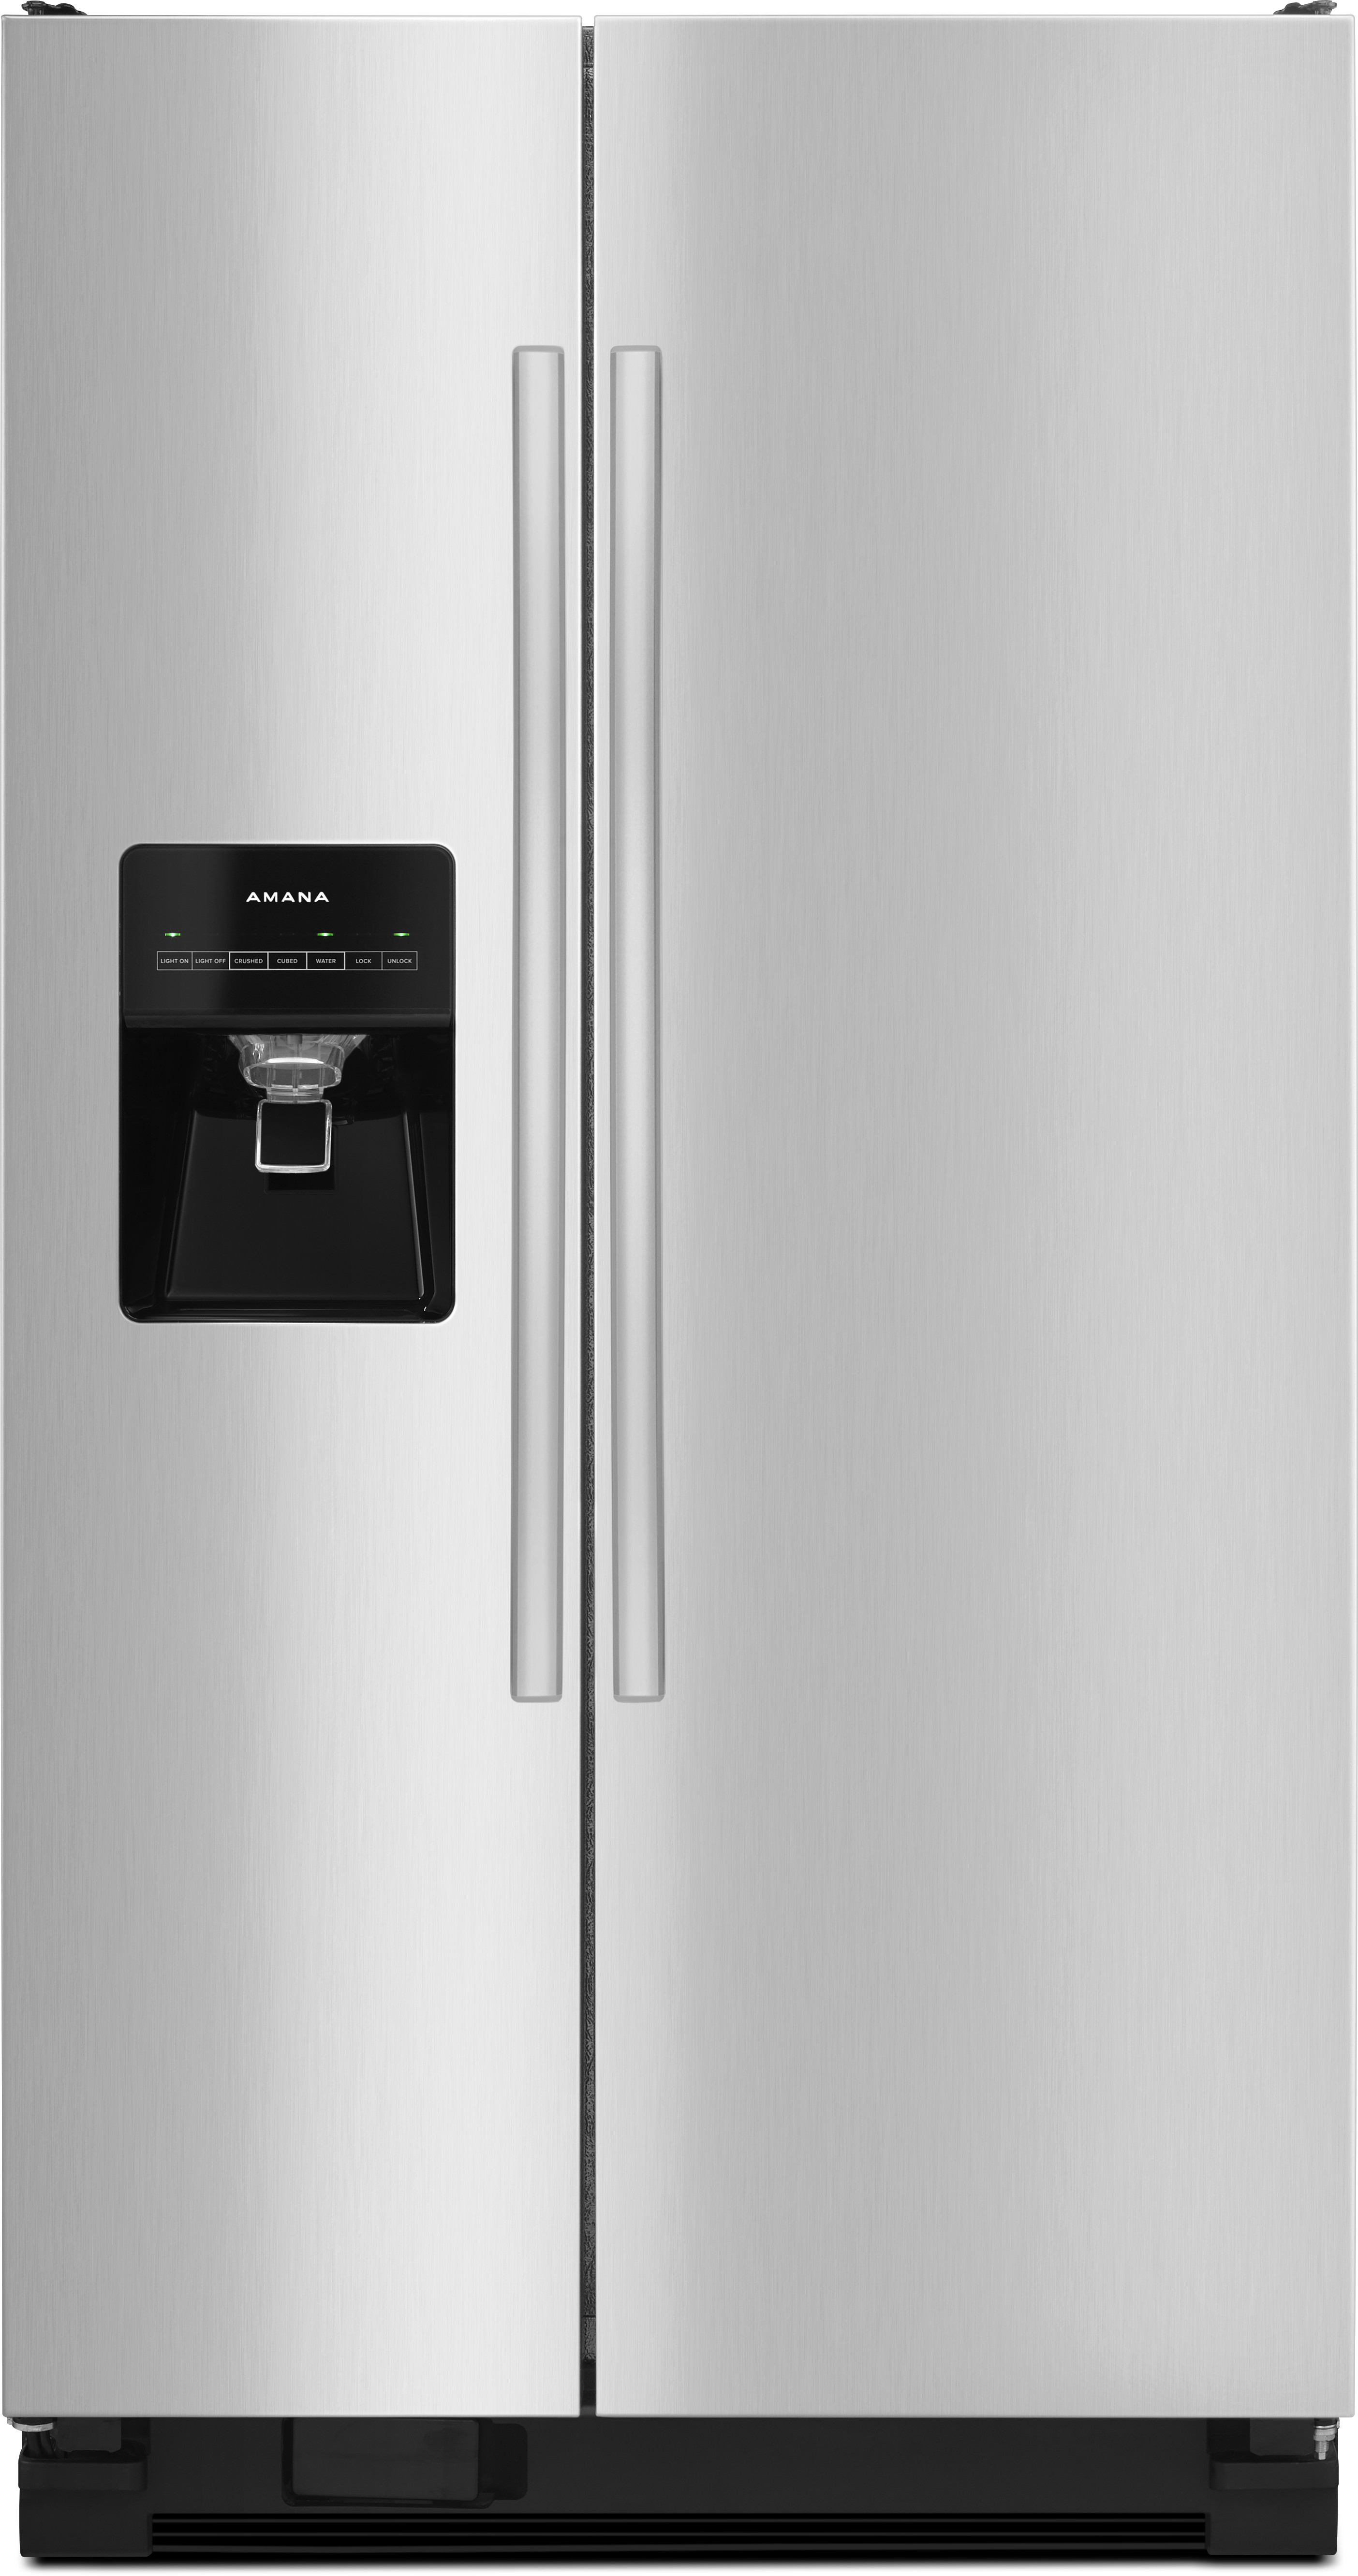 Amana side by side refrigerator reviews - Amana Refrigerators Fridges Buy An Amana Refrigerator At Aj Madison